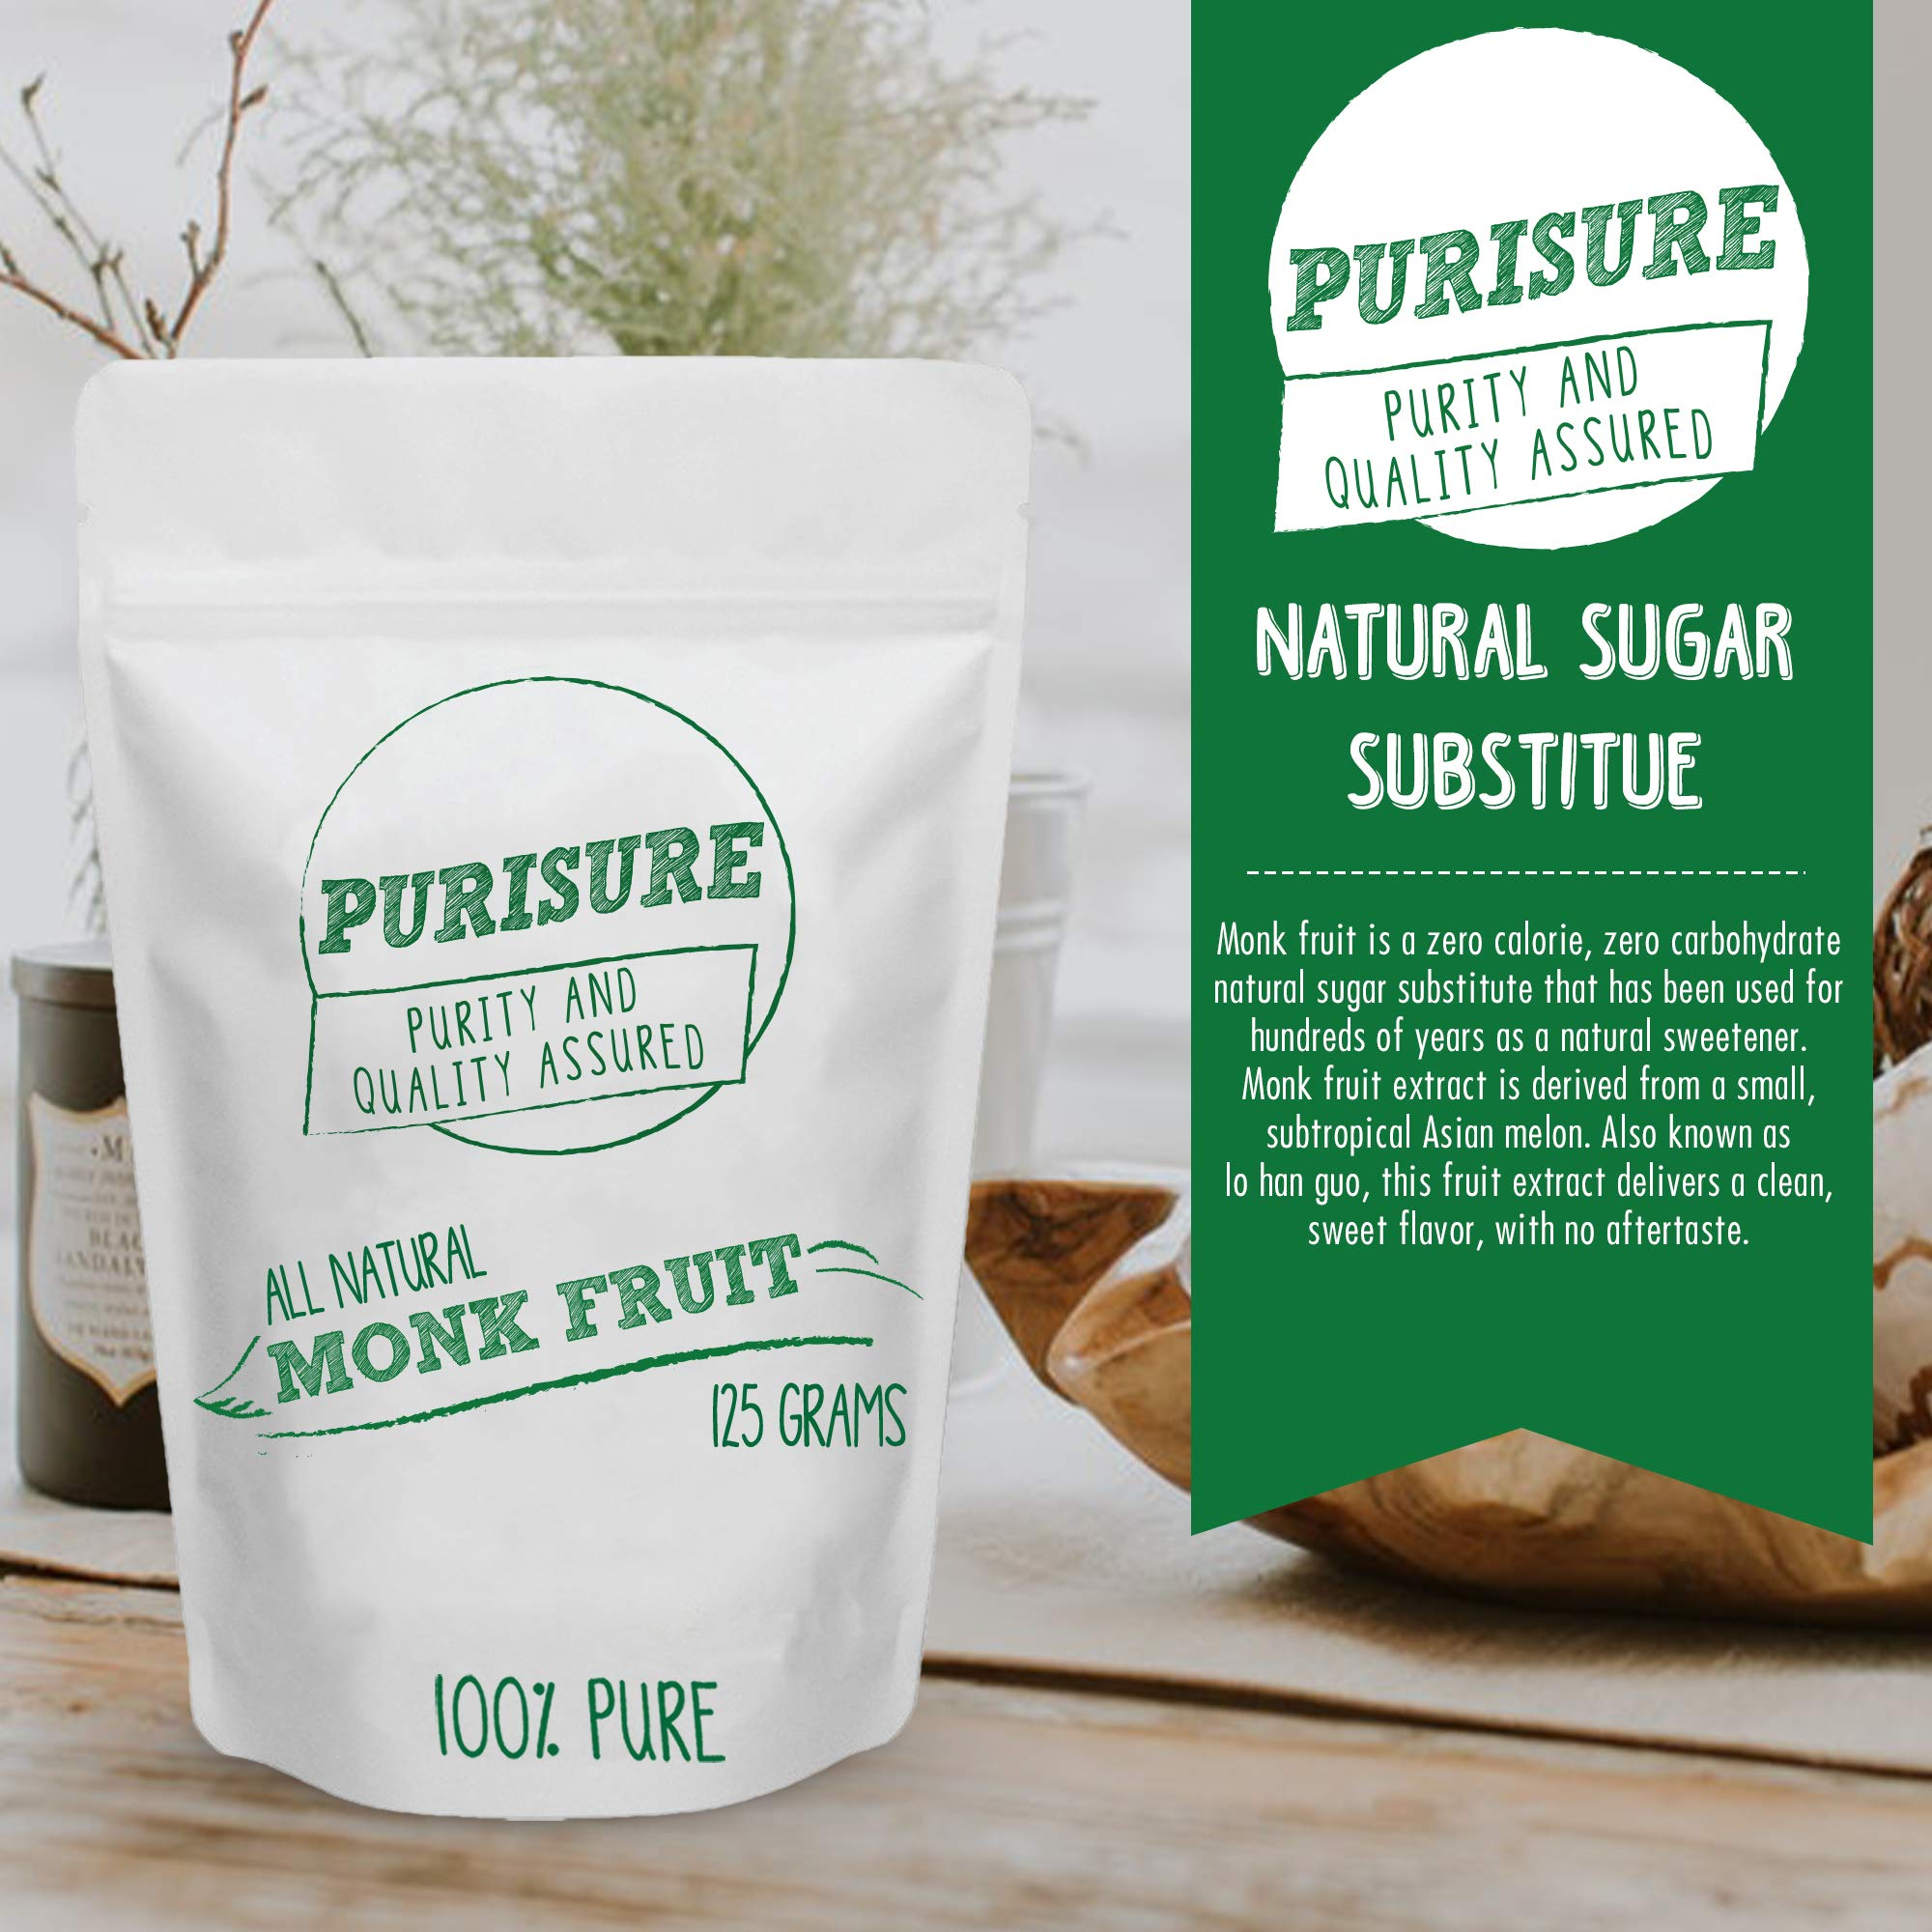 Purisure Monk Fruit Extract 125g (400 Servings) | Sugar-Free Natural Sweetener | Zero-Calorie Zero-Carb Sugar Substitute | No Artificial Sweeteners | Perfect for Low-Sugar, Low-Carb, Keto, Paleo Diets by Purisure (Image #3)